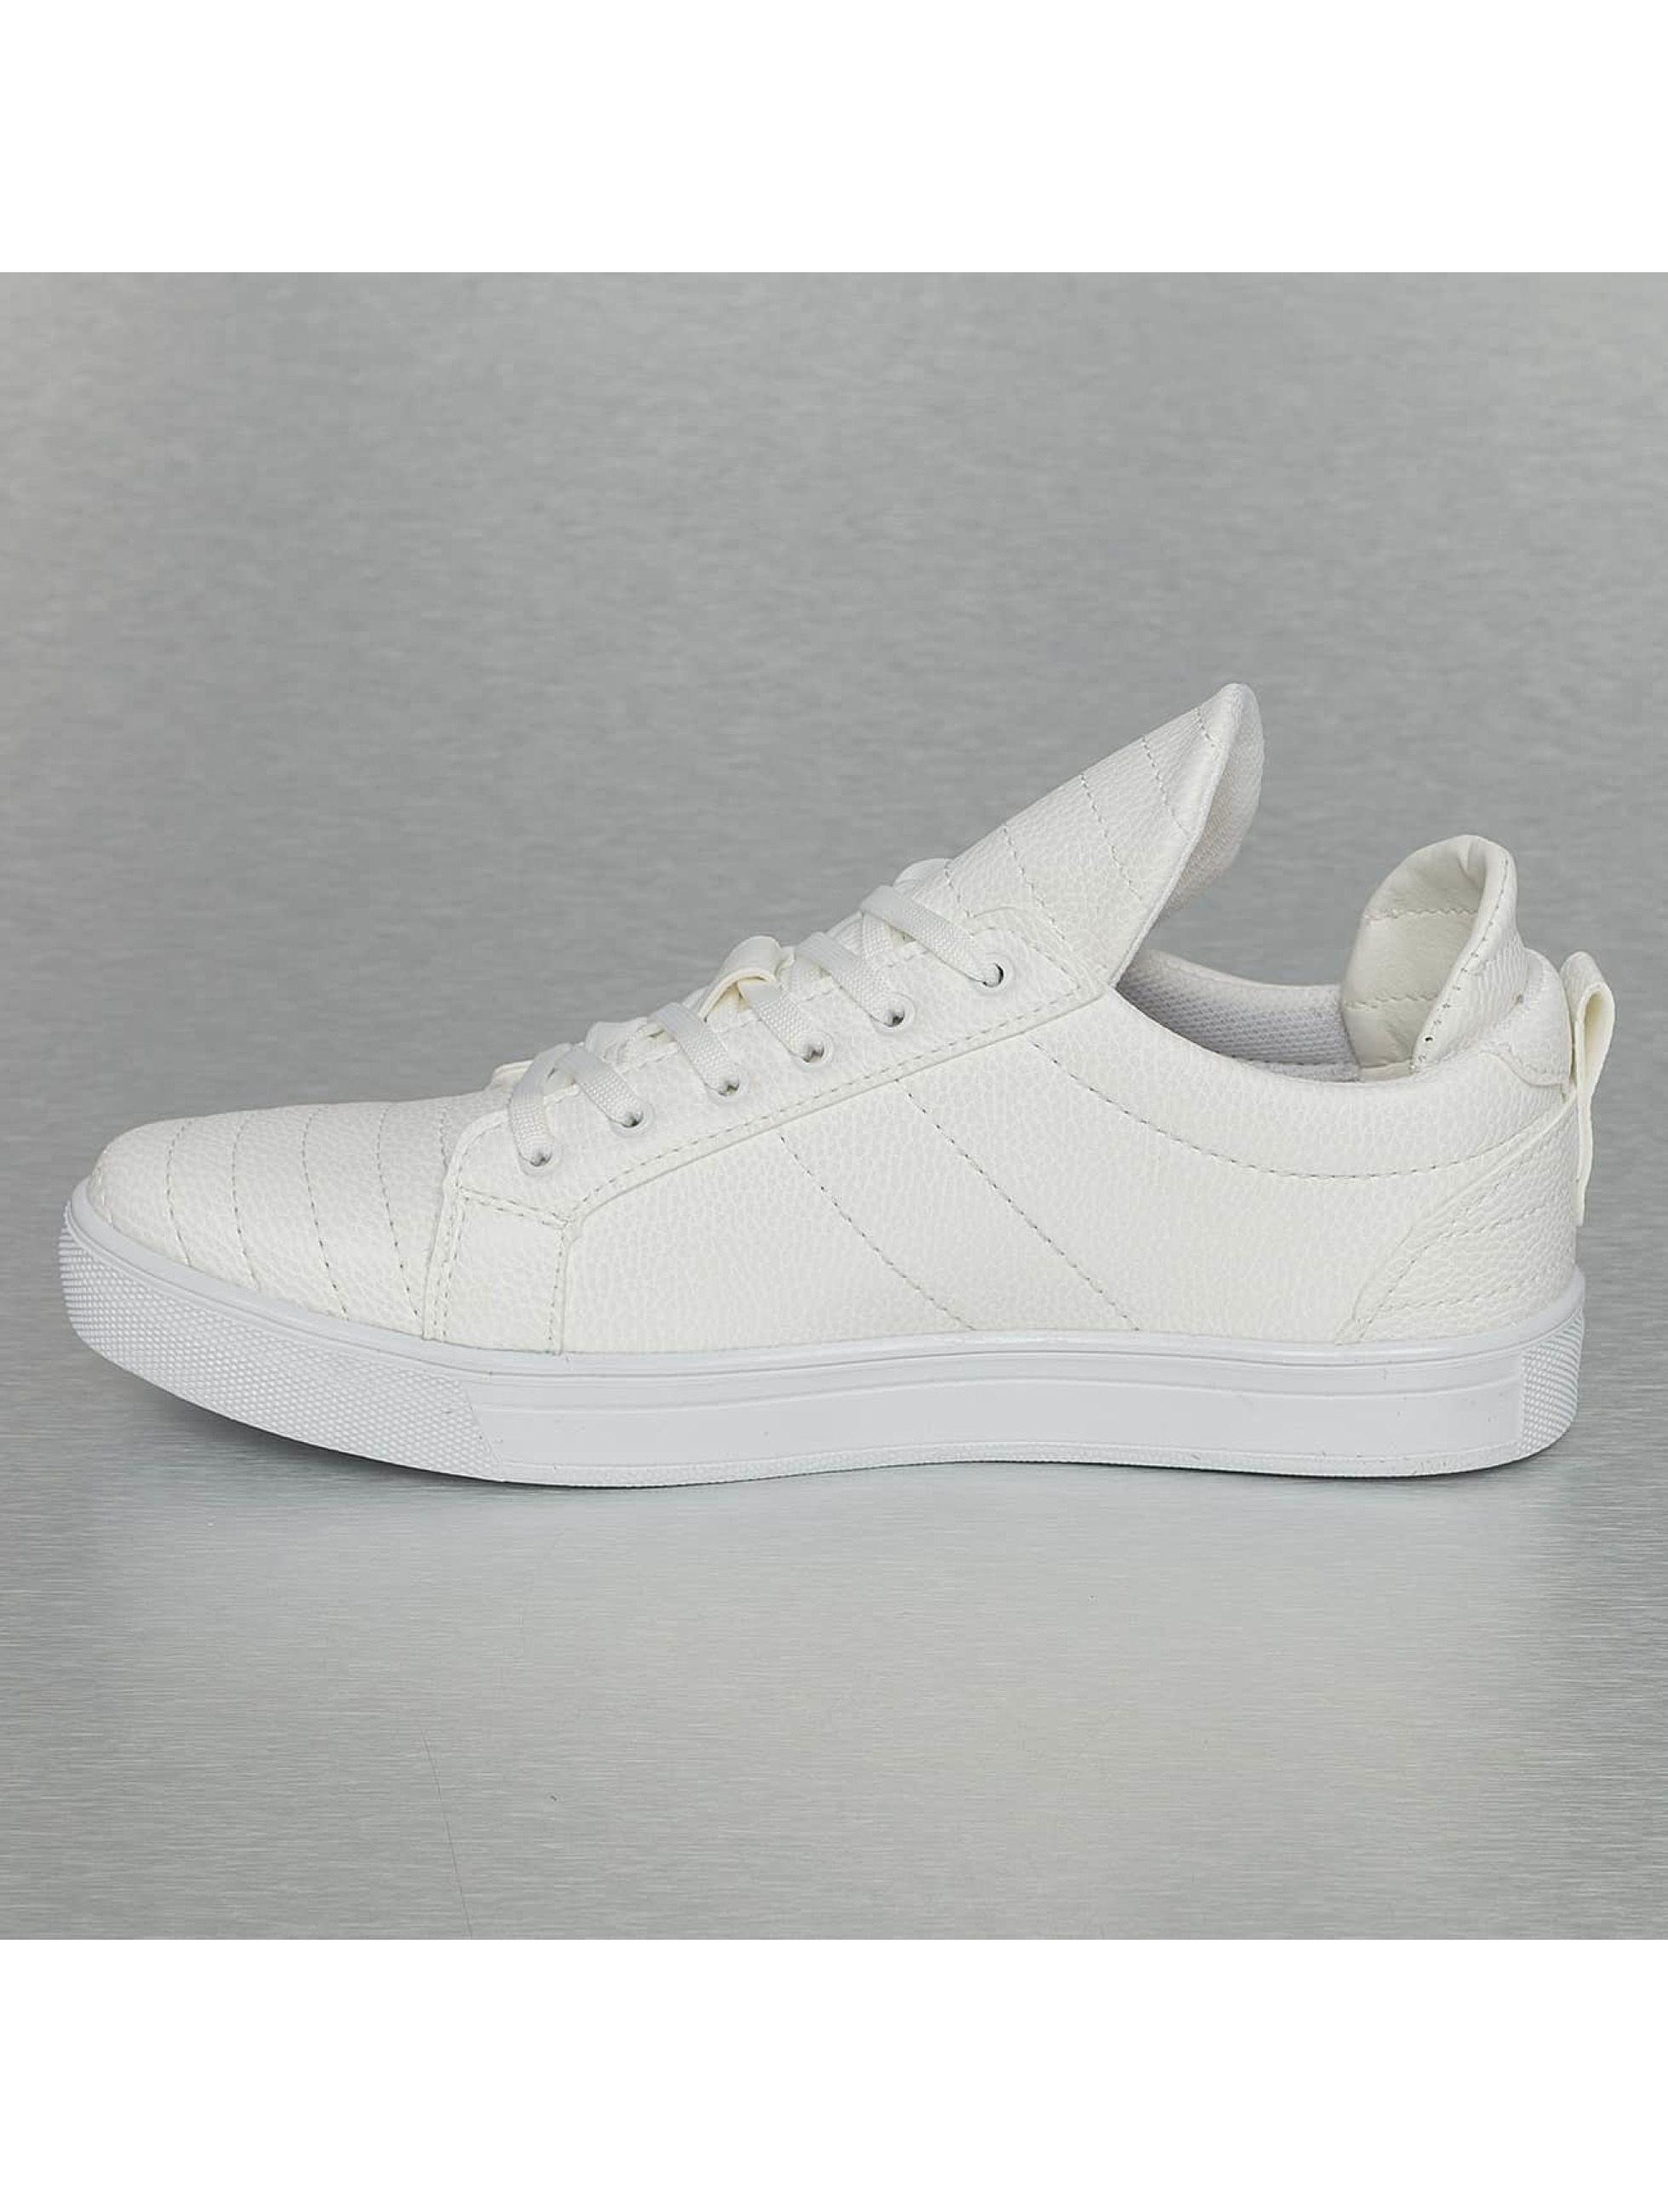 New York Style Sneakers Low Top white